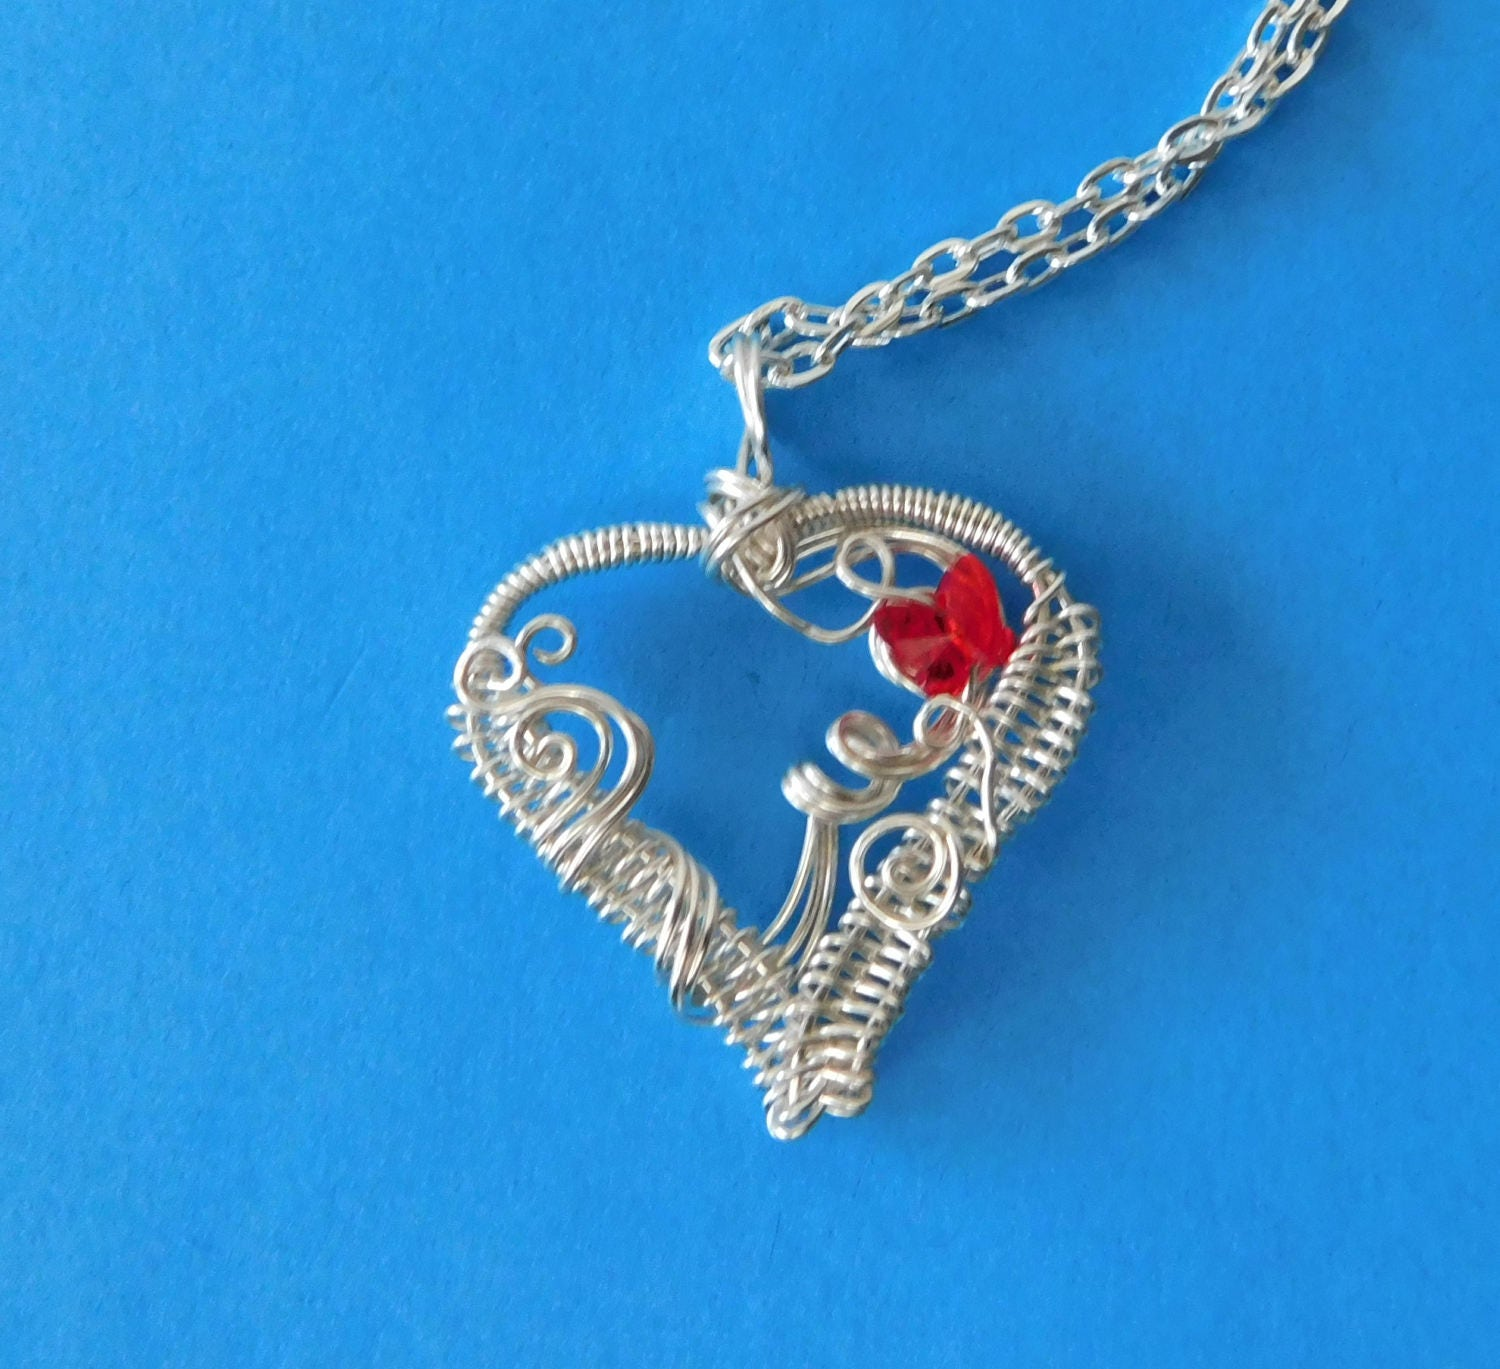 Heart Necklace Jewelry Gift for Wife Girlfriend Pendant